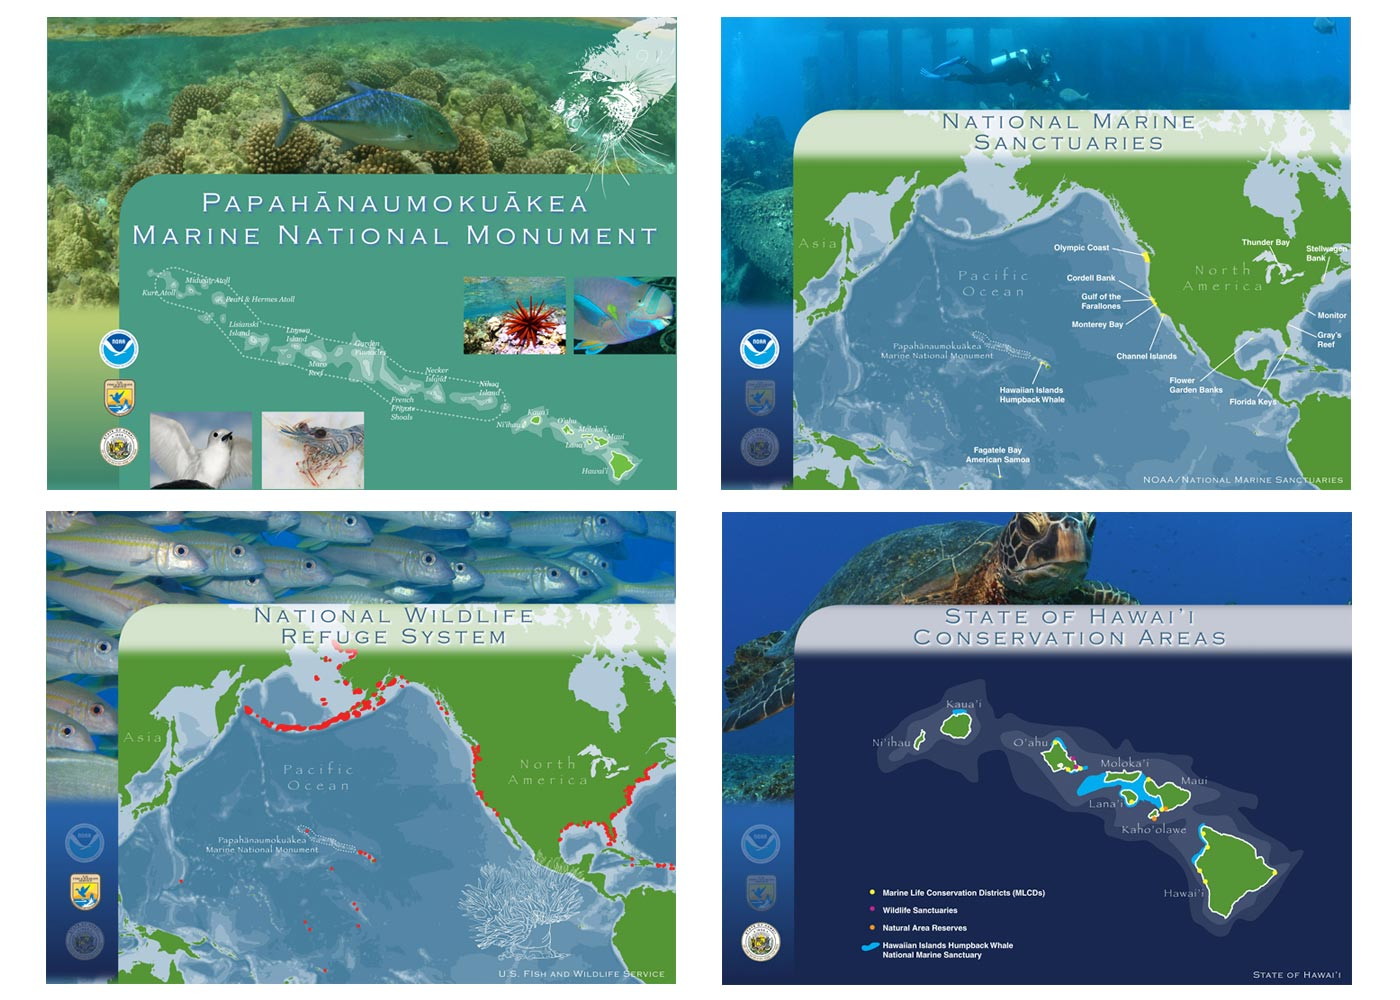 Mosaic of Map Graphics showing Papahanaumokuakea Marine National Monument in relation to Federal and State Agencies